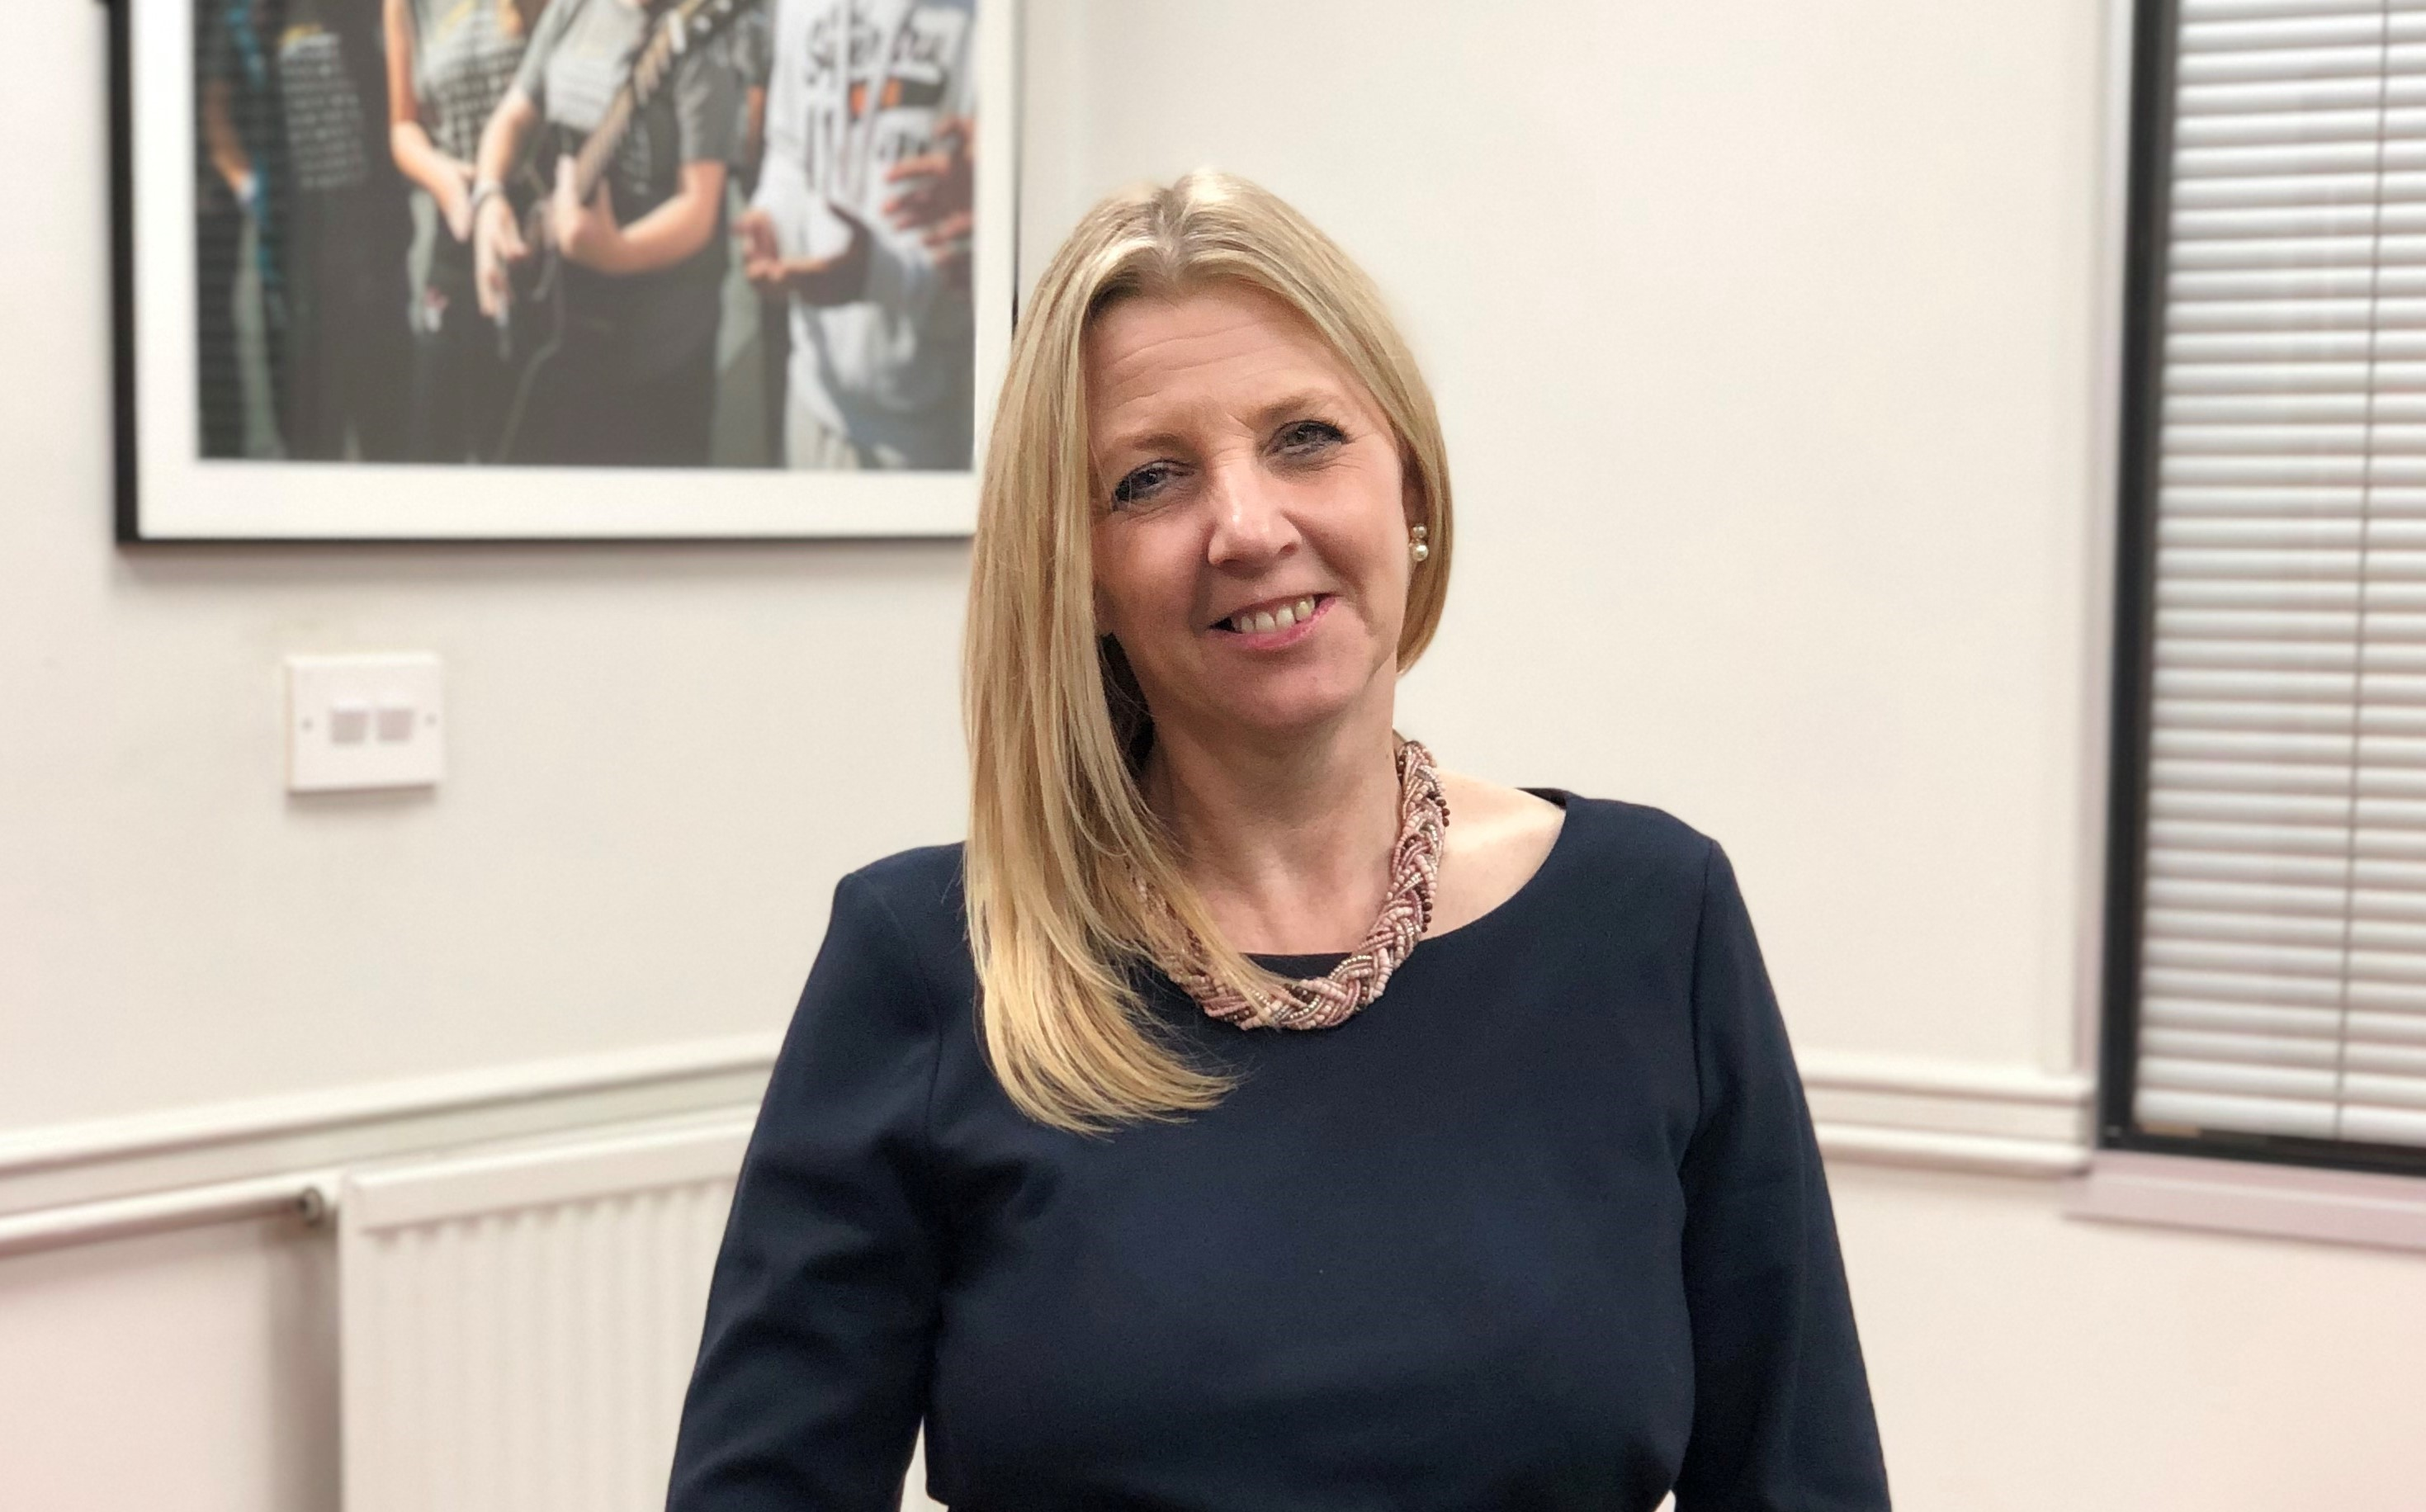 IoD APPOINTS MICHELLE ALLISON AS GREATER LINCS CHAIR